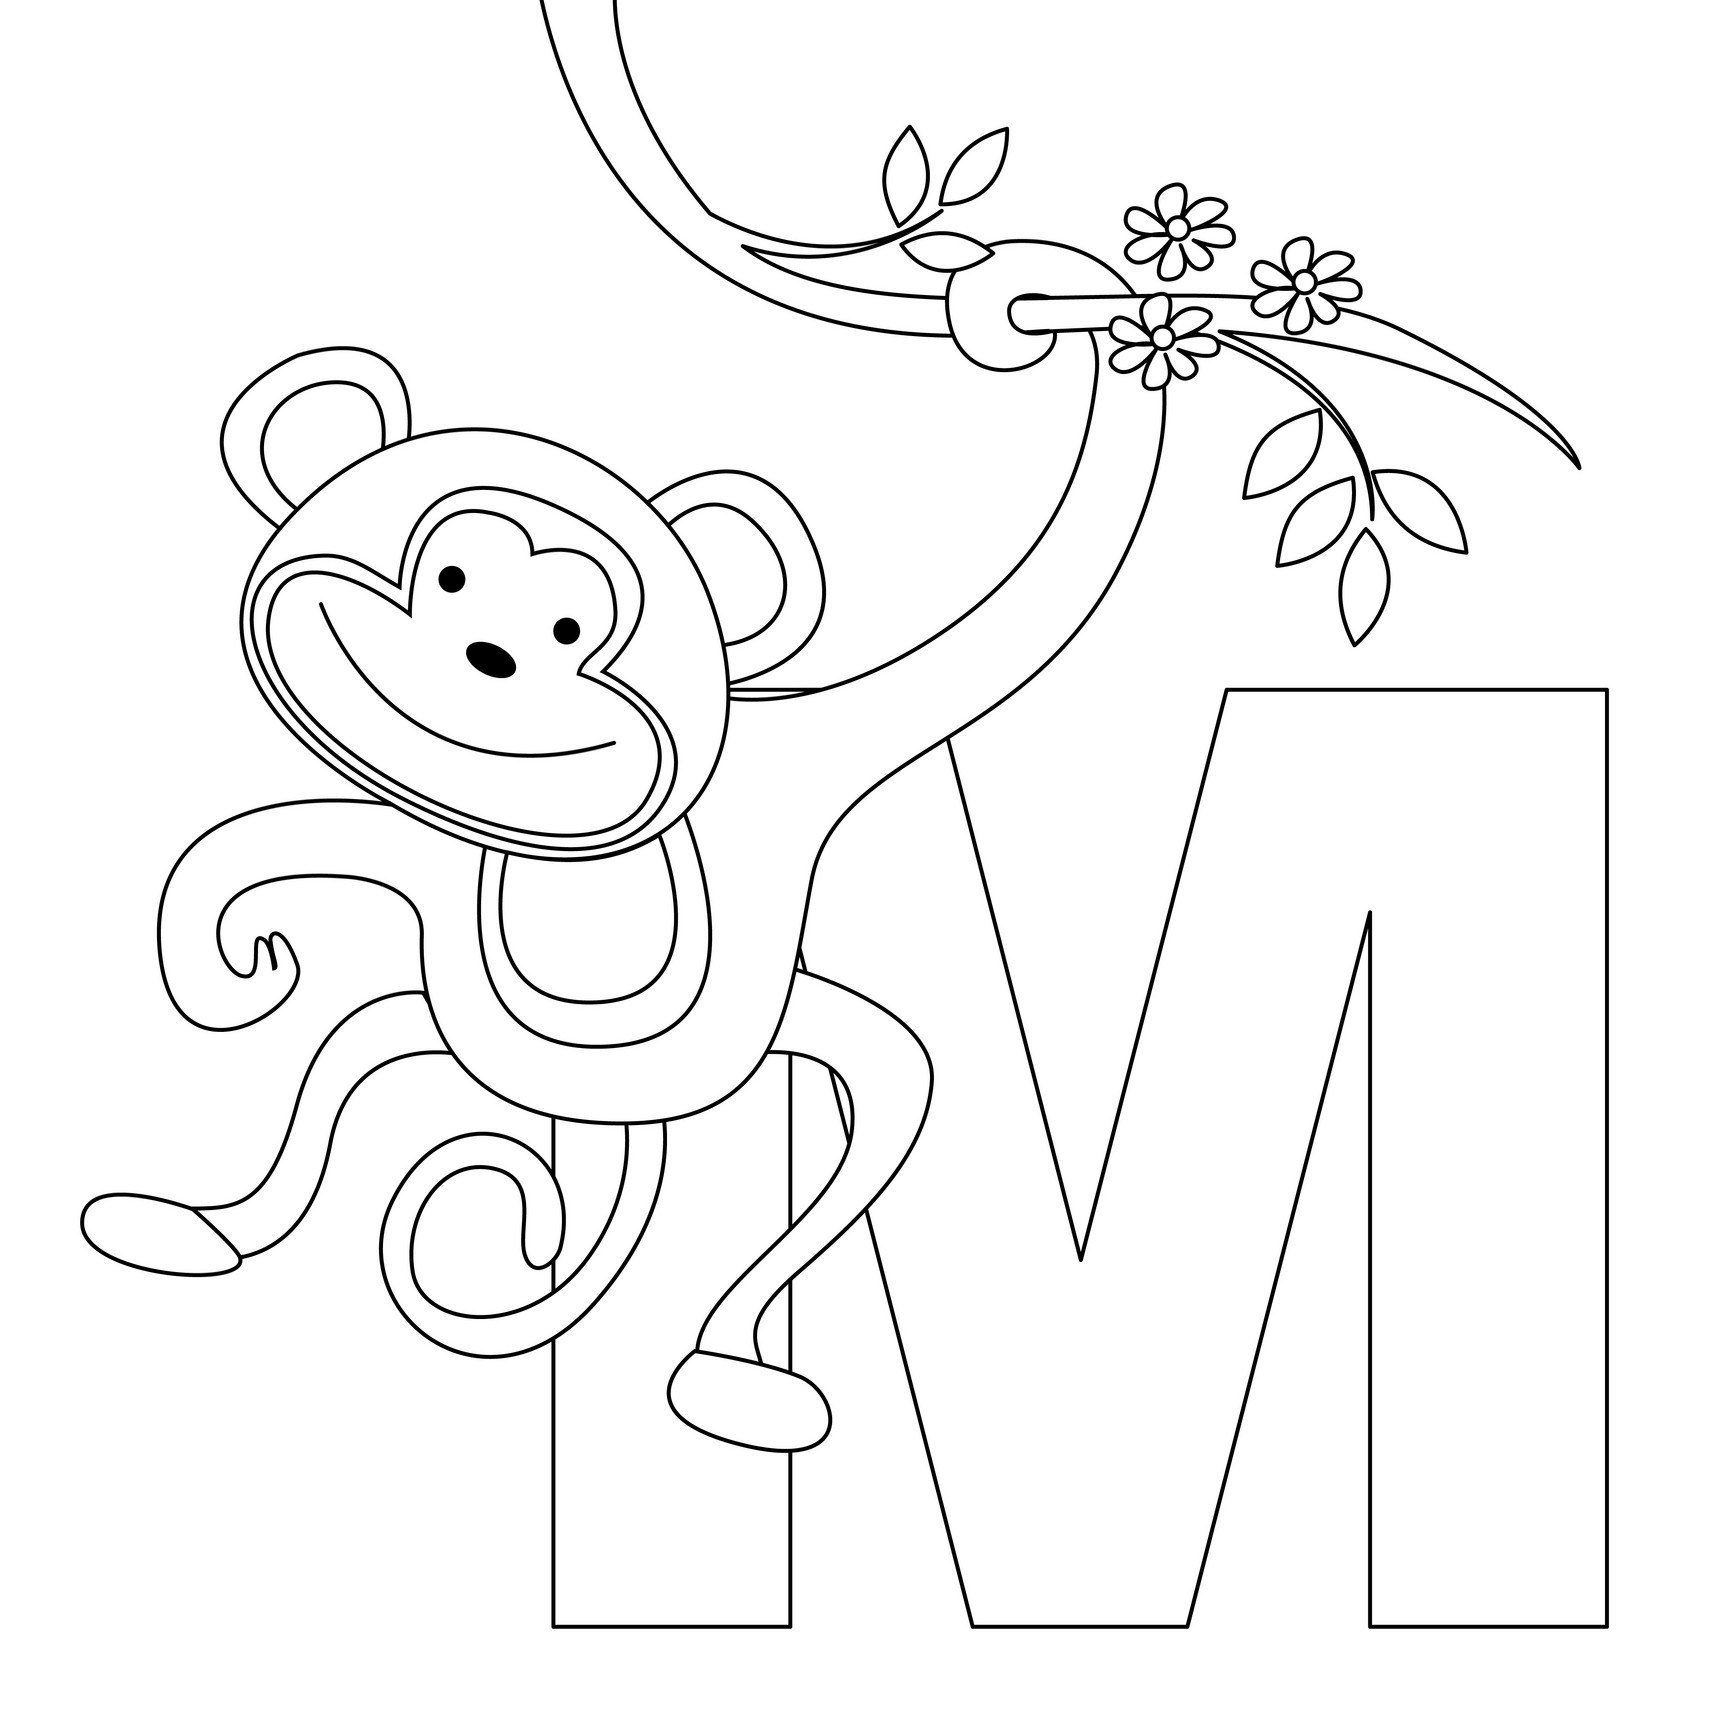 Coloring pages for letter m - Alphabet Coloring Pages Letter M